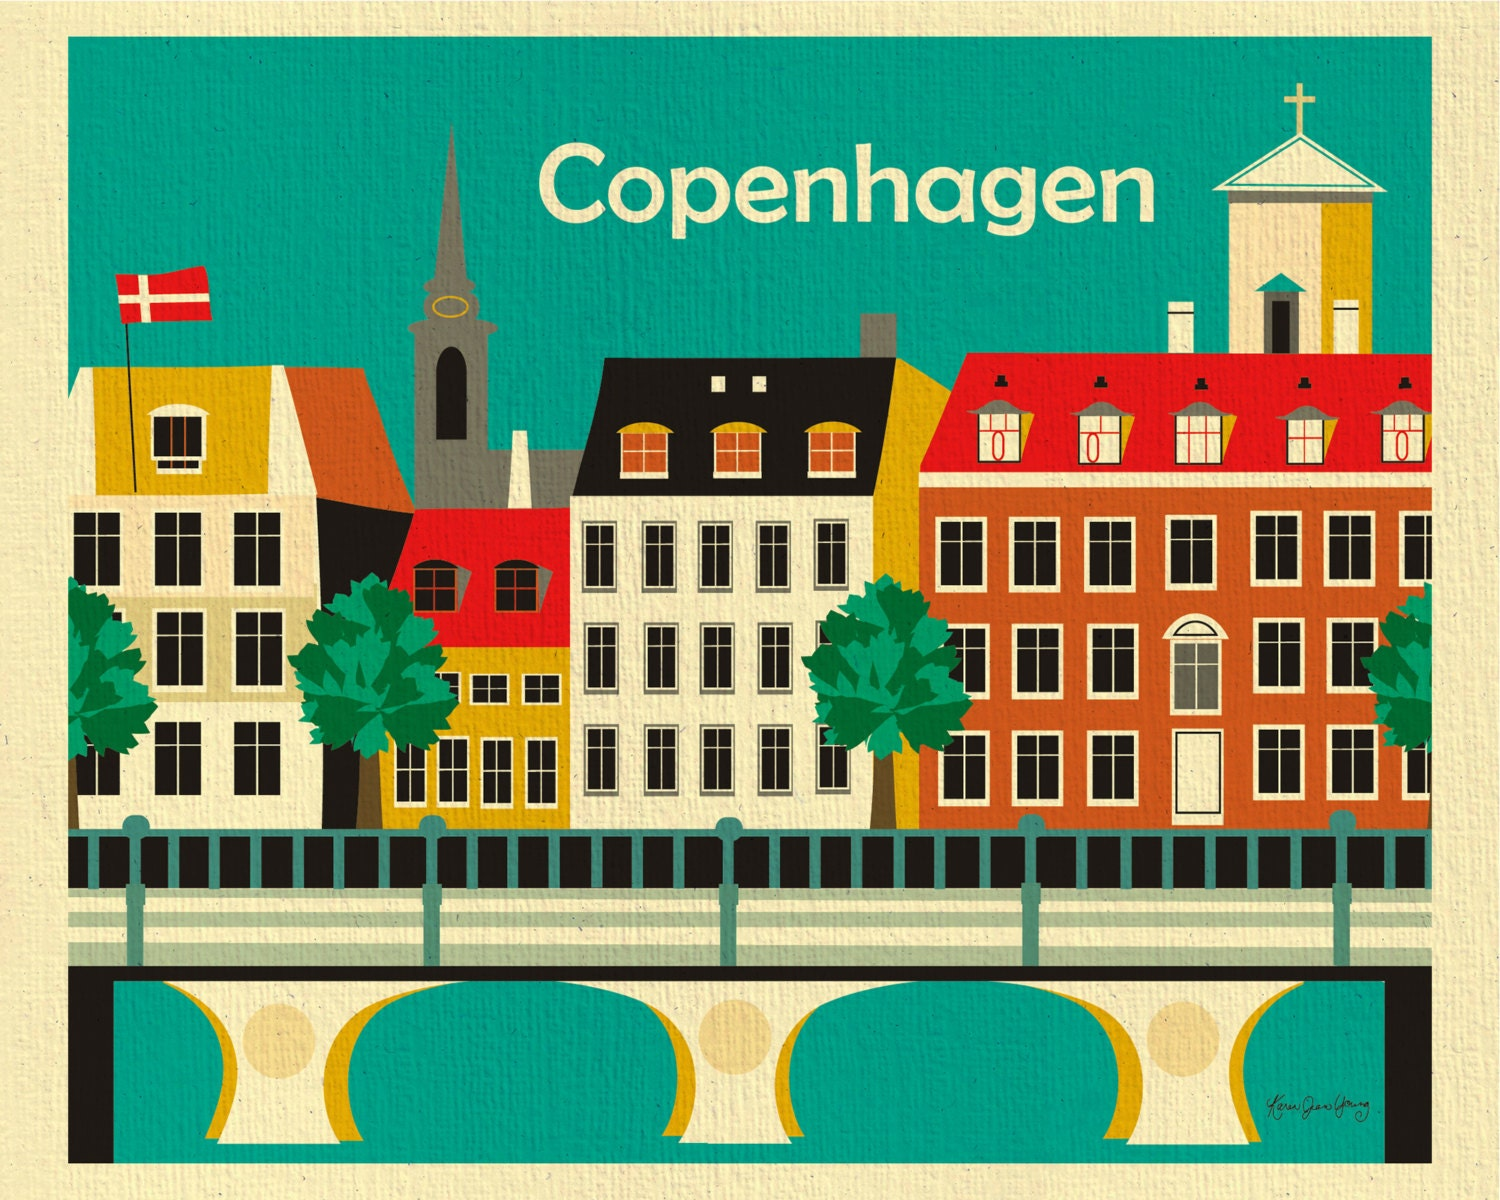 copenhagen denmark print nyahvn skyline copenhagen wall art. Black Bedroom Furniture Sets. Home Design Ideas